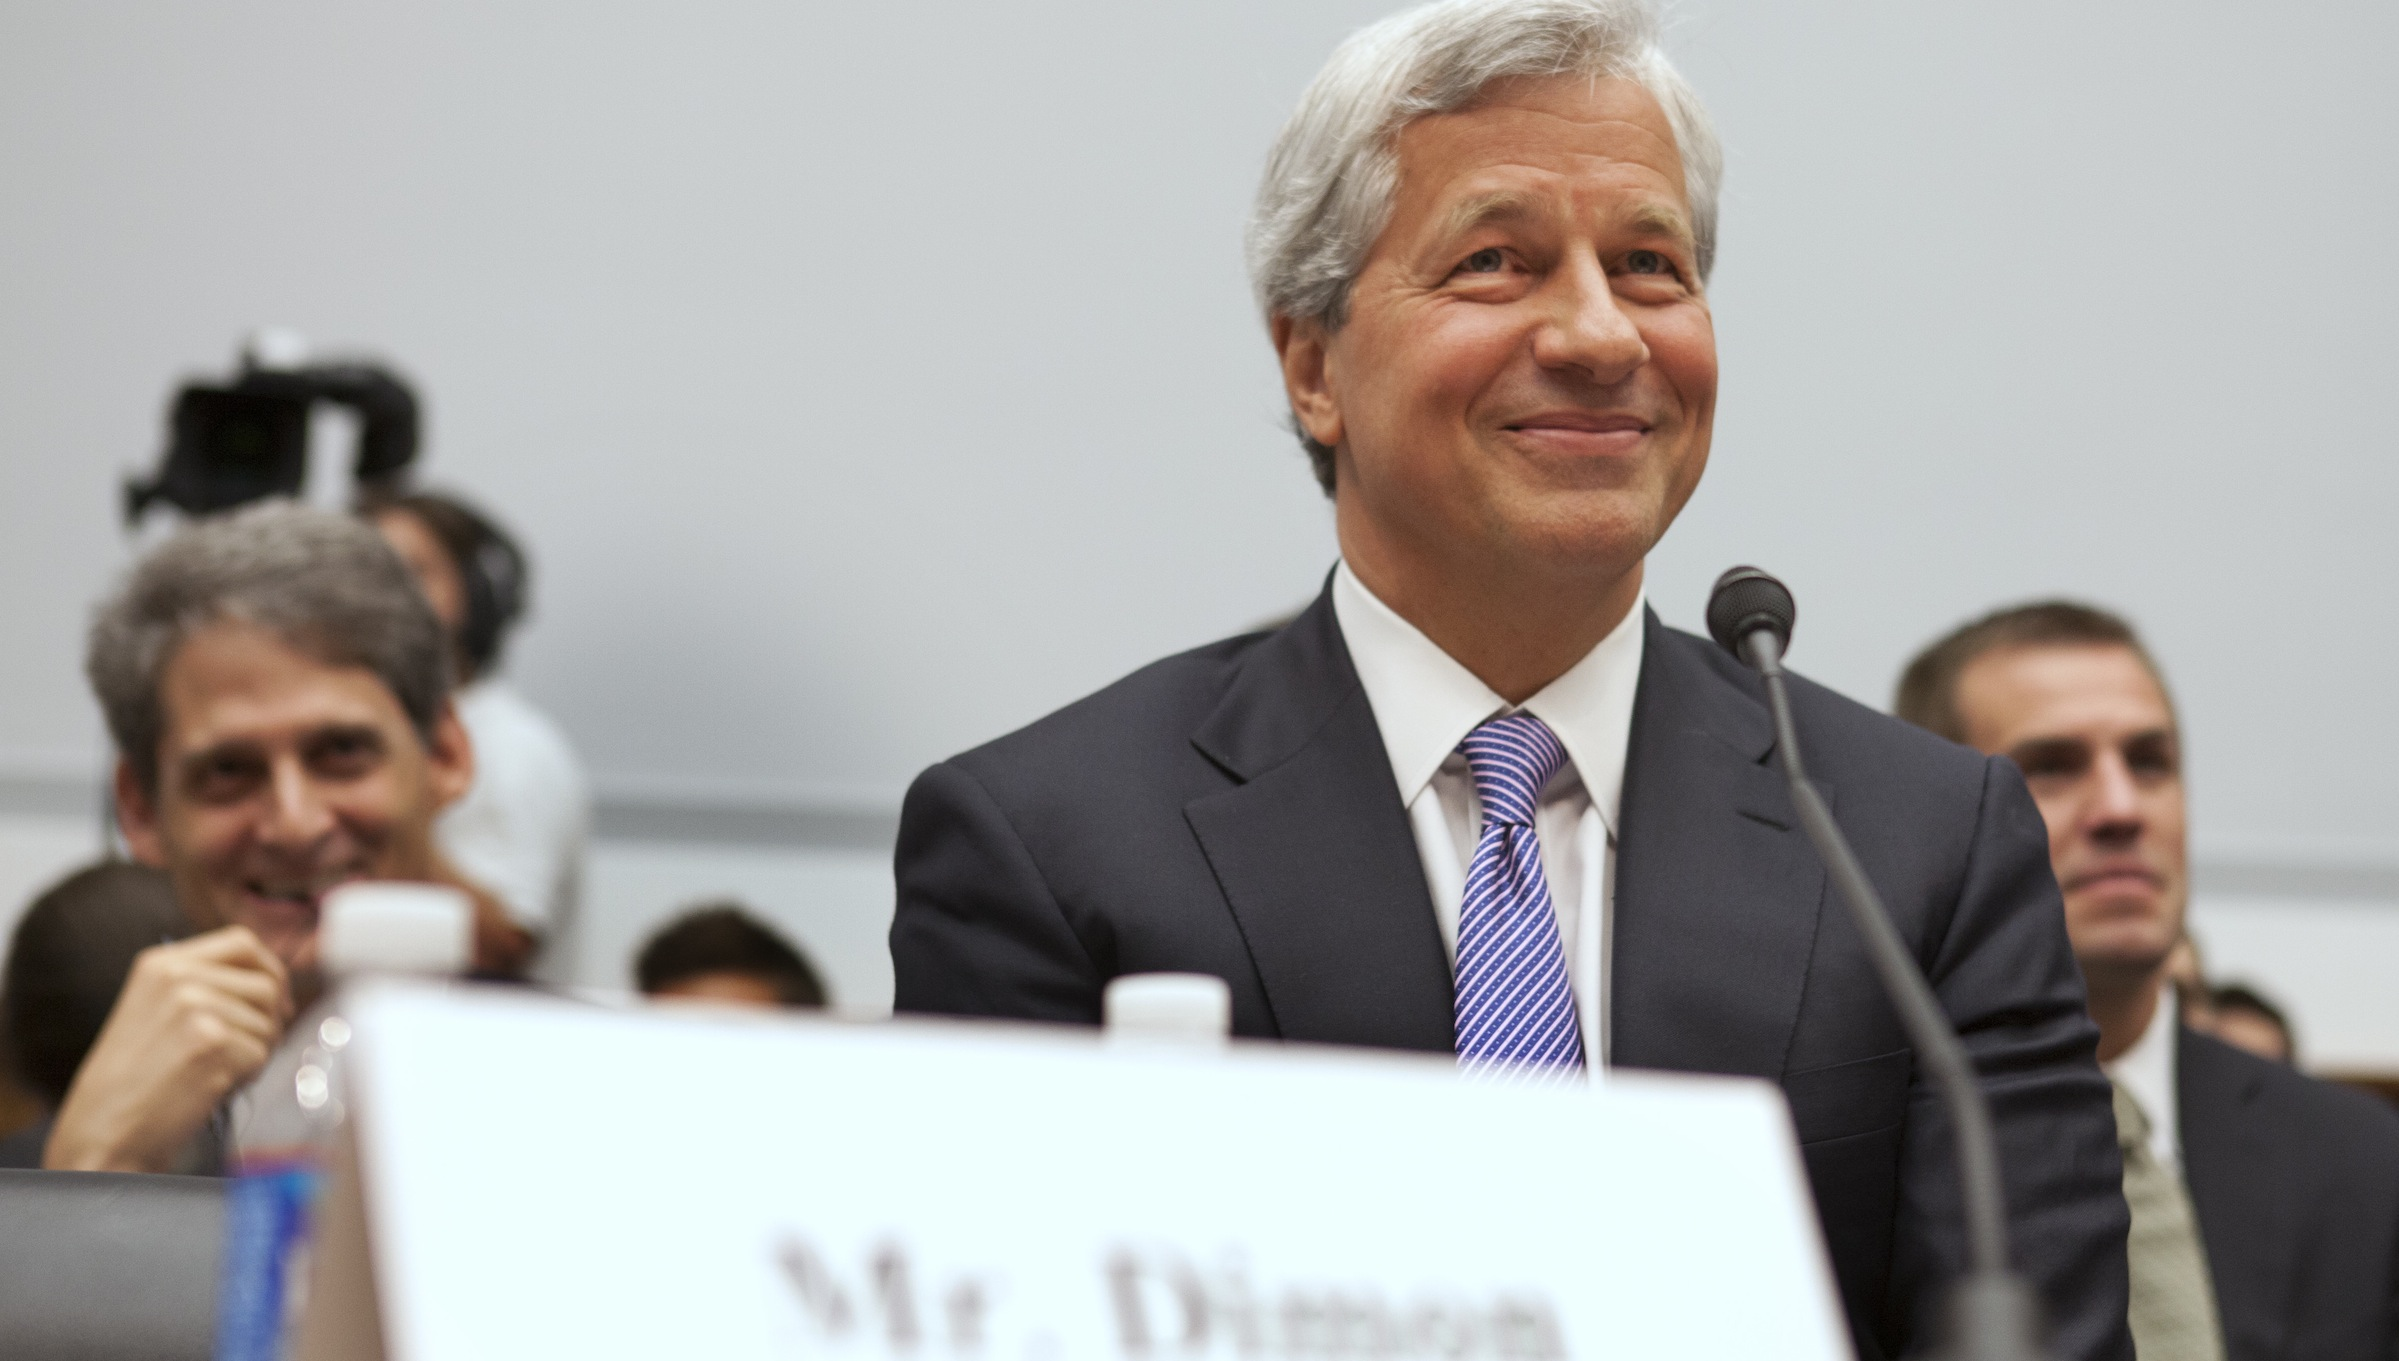 Jamie Dimon, CEO of JPMorgan Chase, smiles while testifying before the House Financial Services Committee on Capitol Hill in Washington, on Tuesday, June 19, 2012. (AP Photo/Jacquelyn Martin)